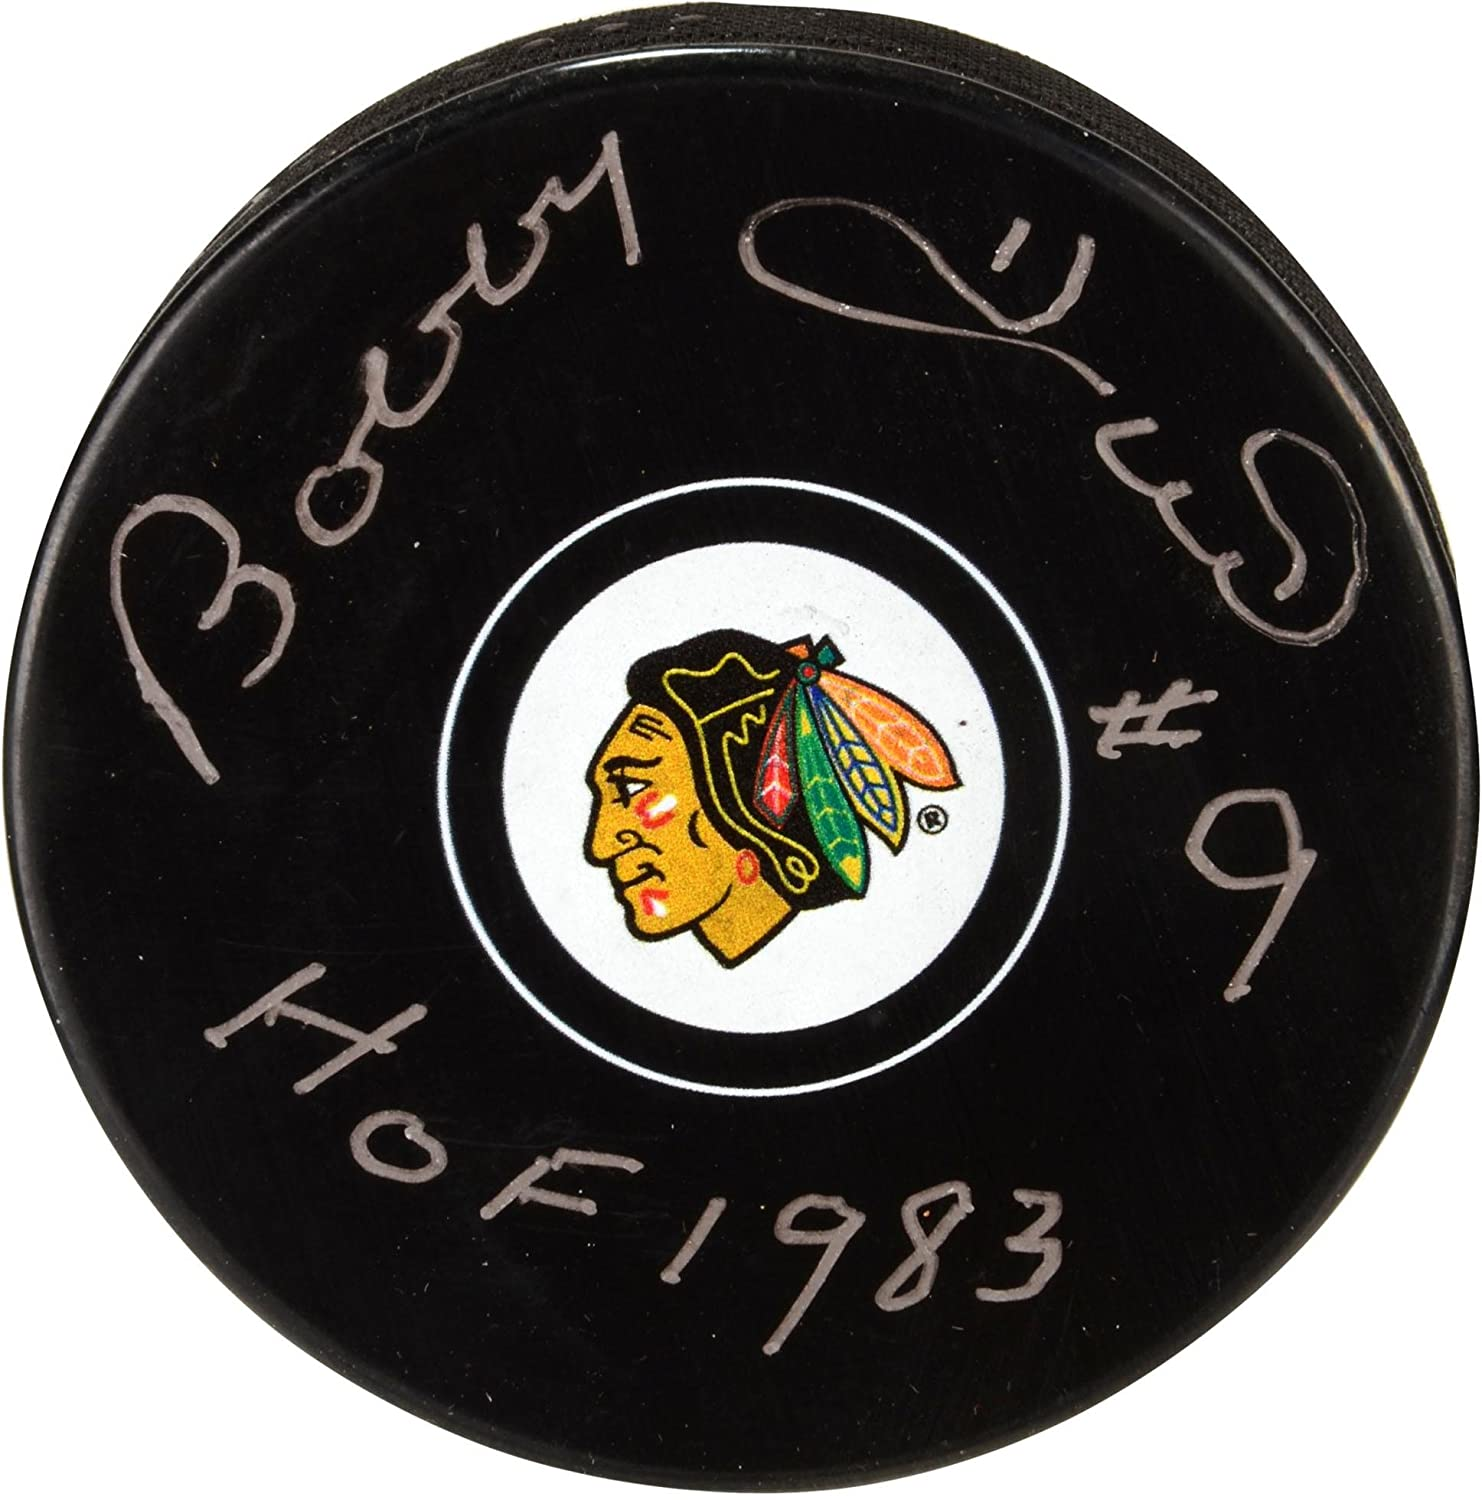 Bobby Hull Chicago Blackhawks Autographed Hockey Puck with HOF 1983 Inscription - Fanatics Authentic Certified